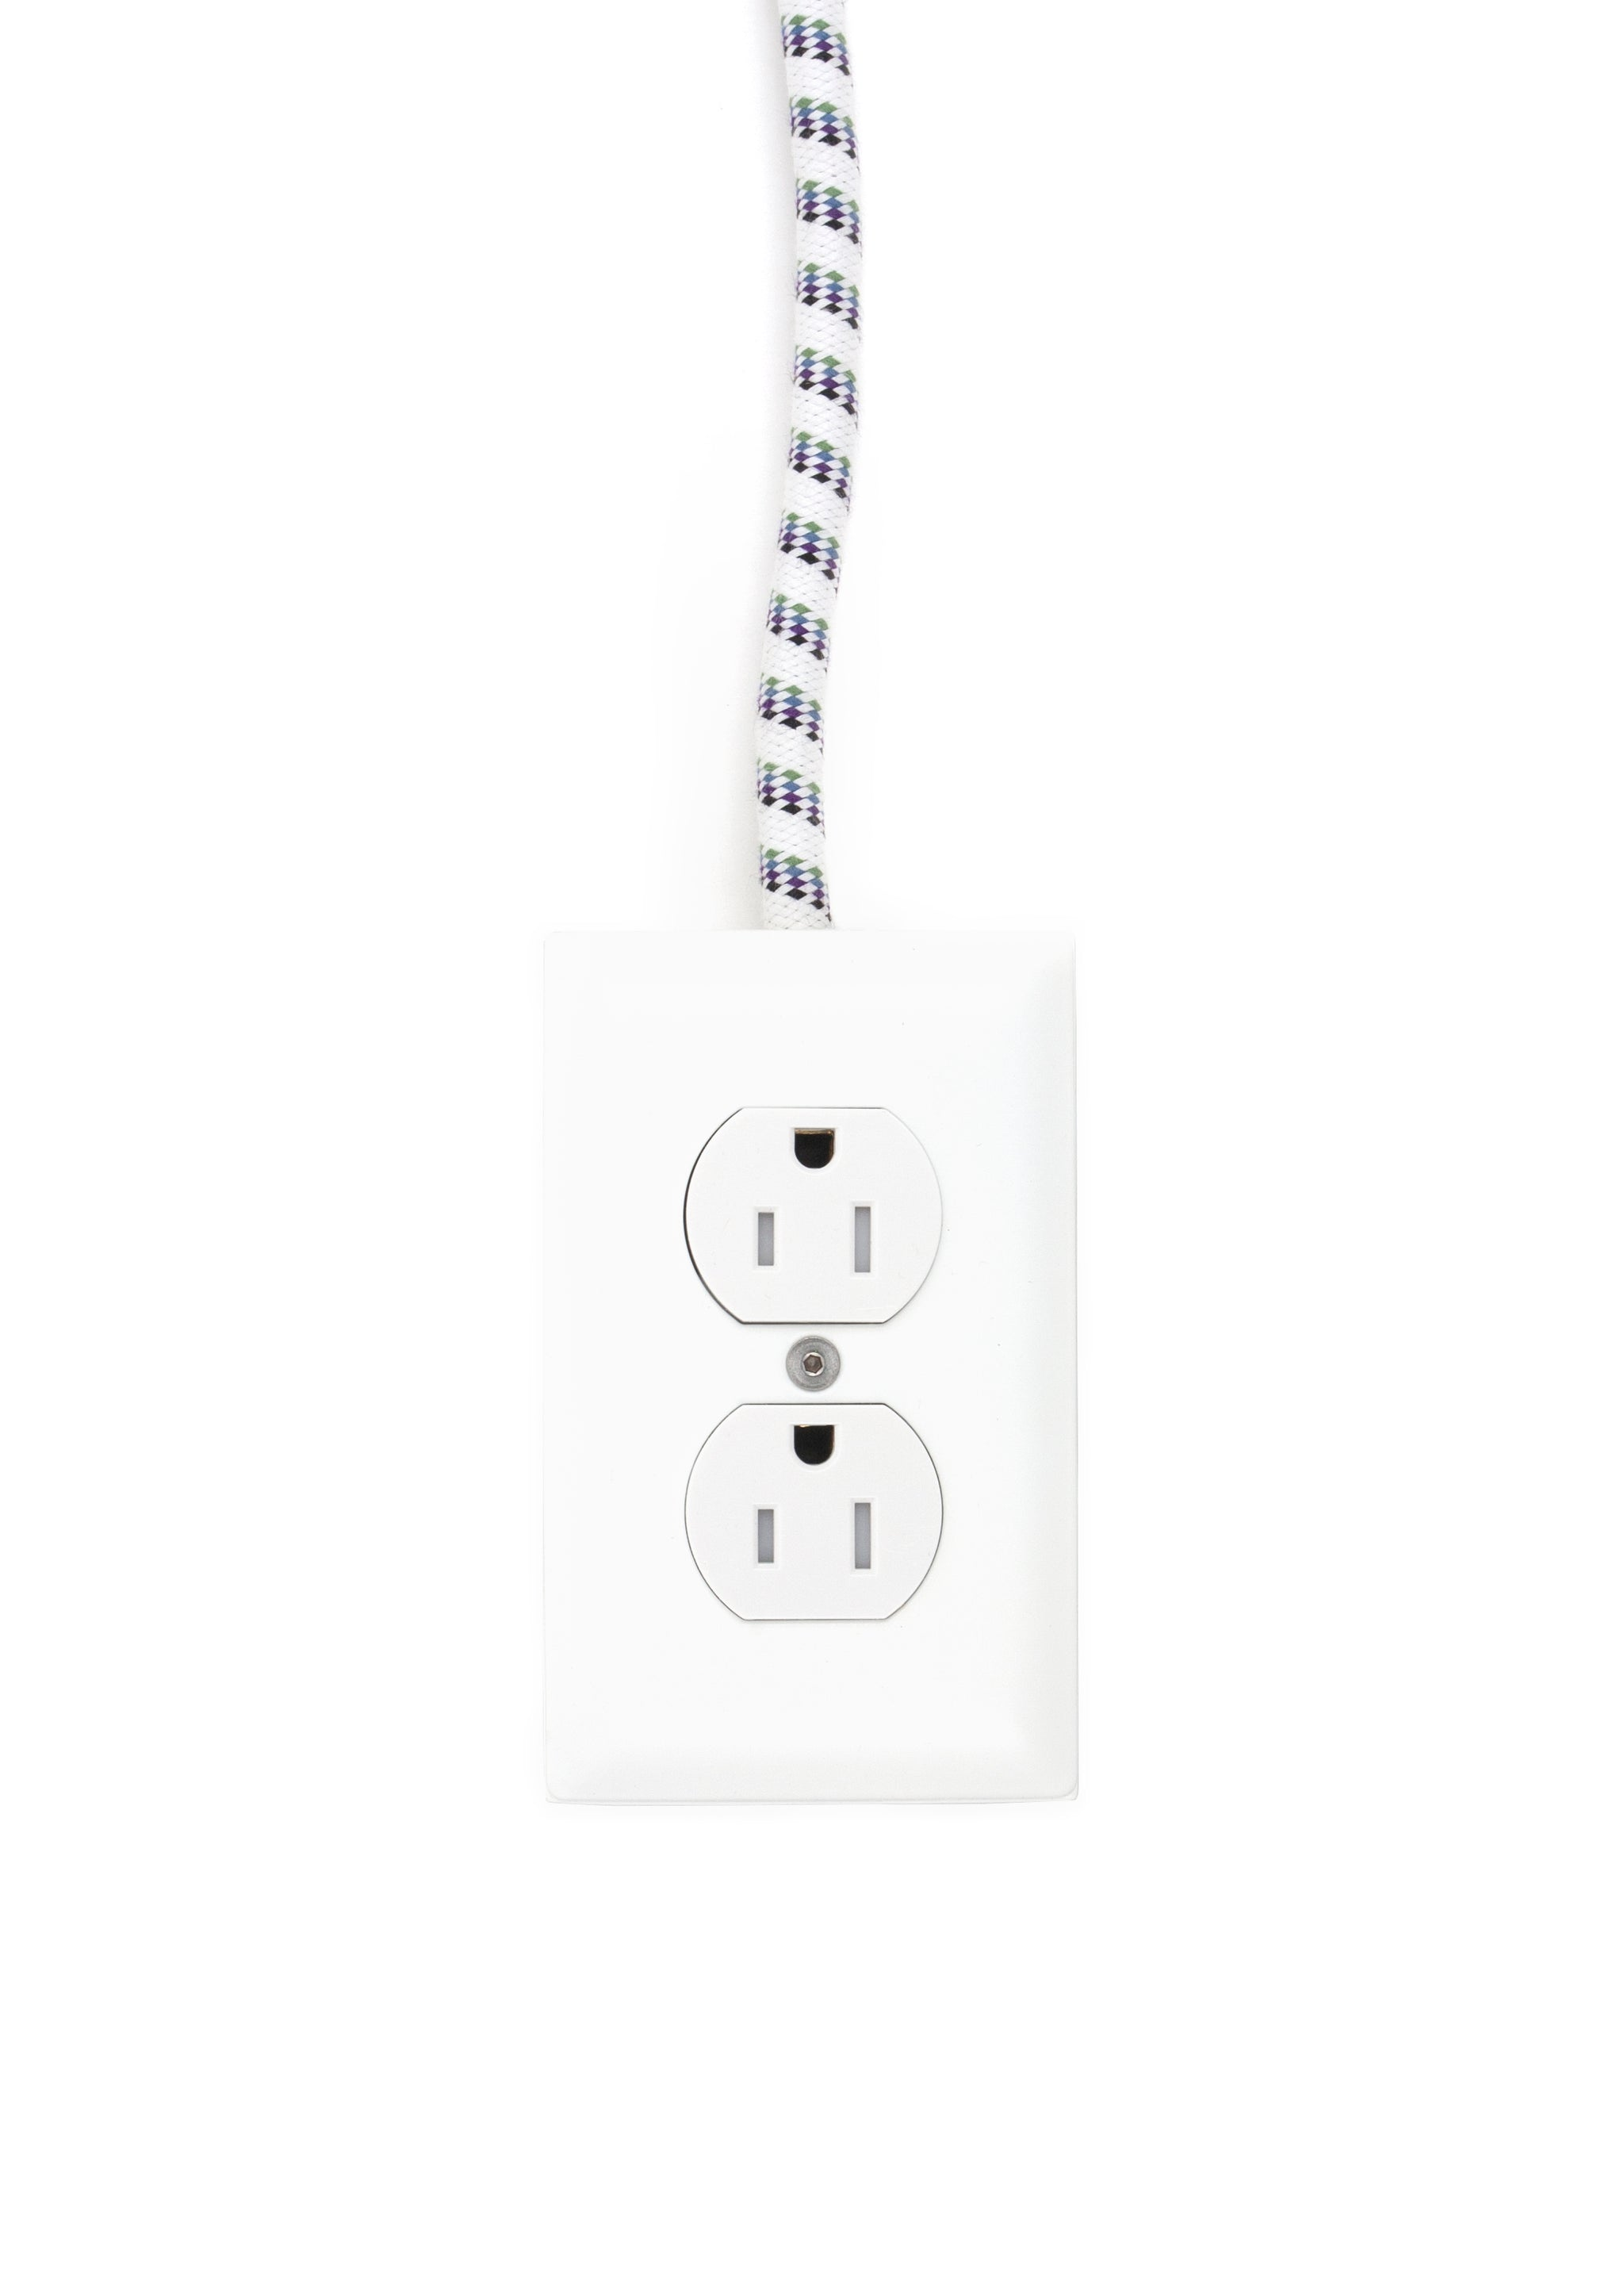 New! Extō Surf's Up - A Modern Dual-Tamper-Resistant Outlet, 13-AMP Extension Cord